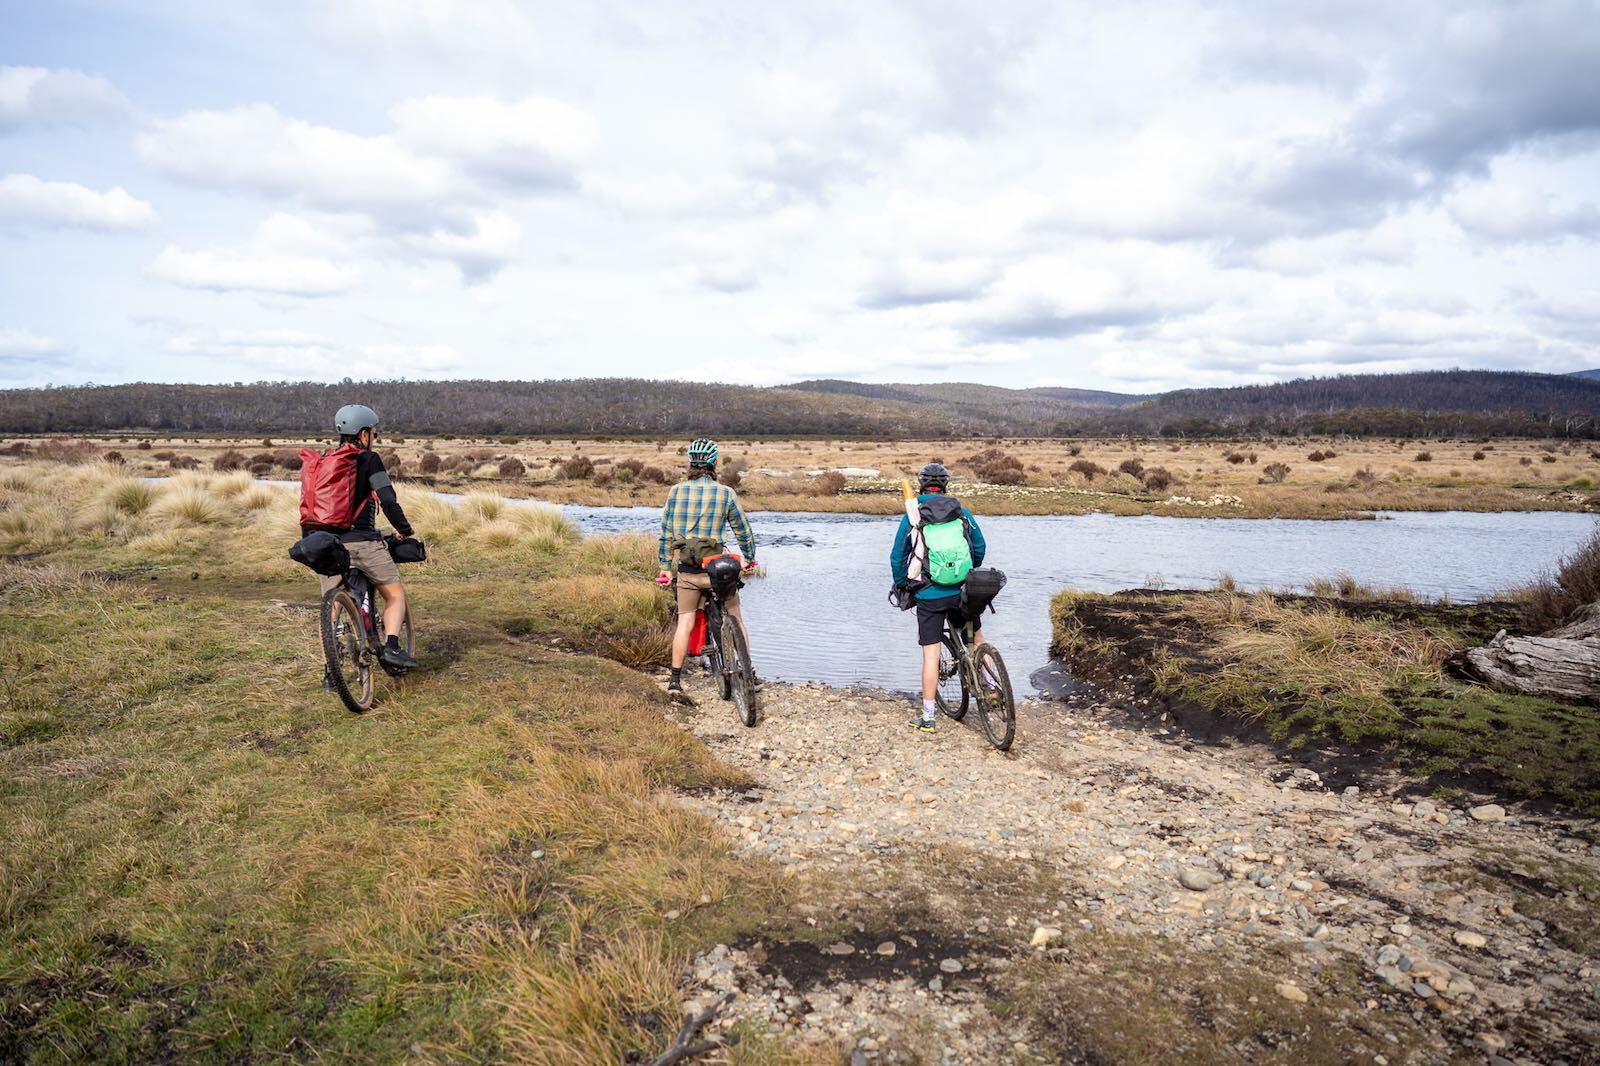 crossing the Eucumbene river near Denisons Campground